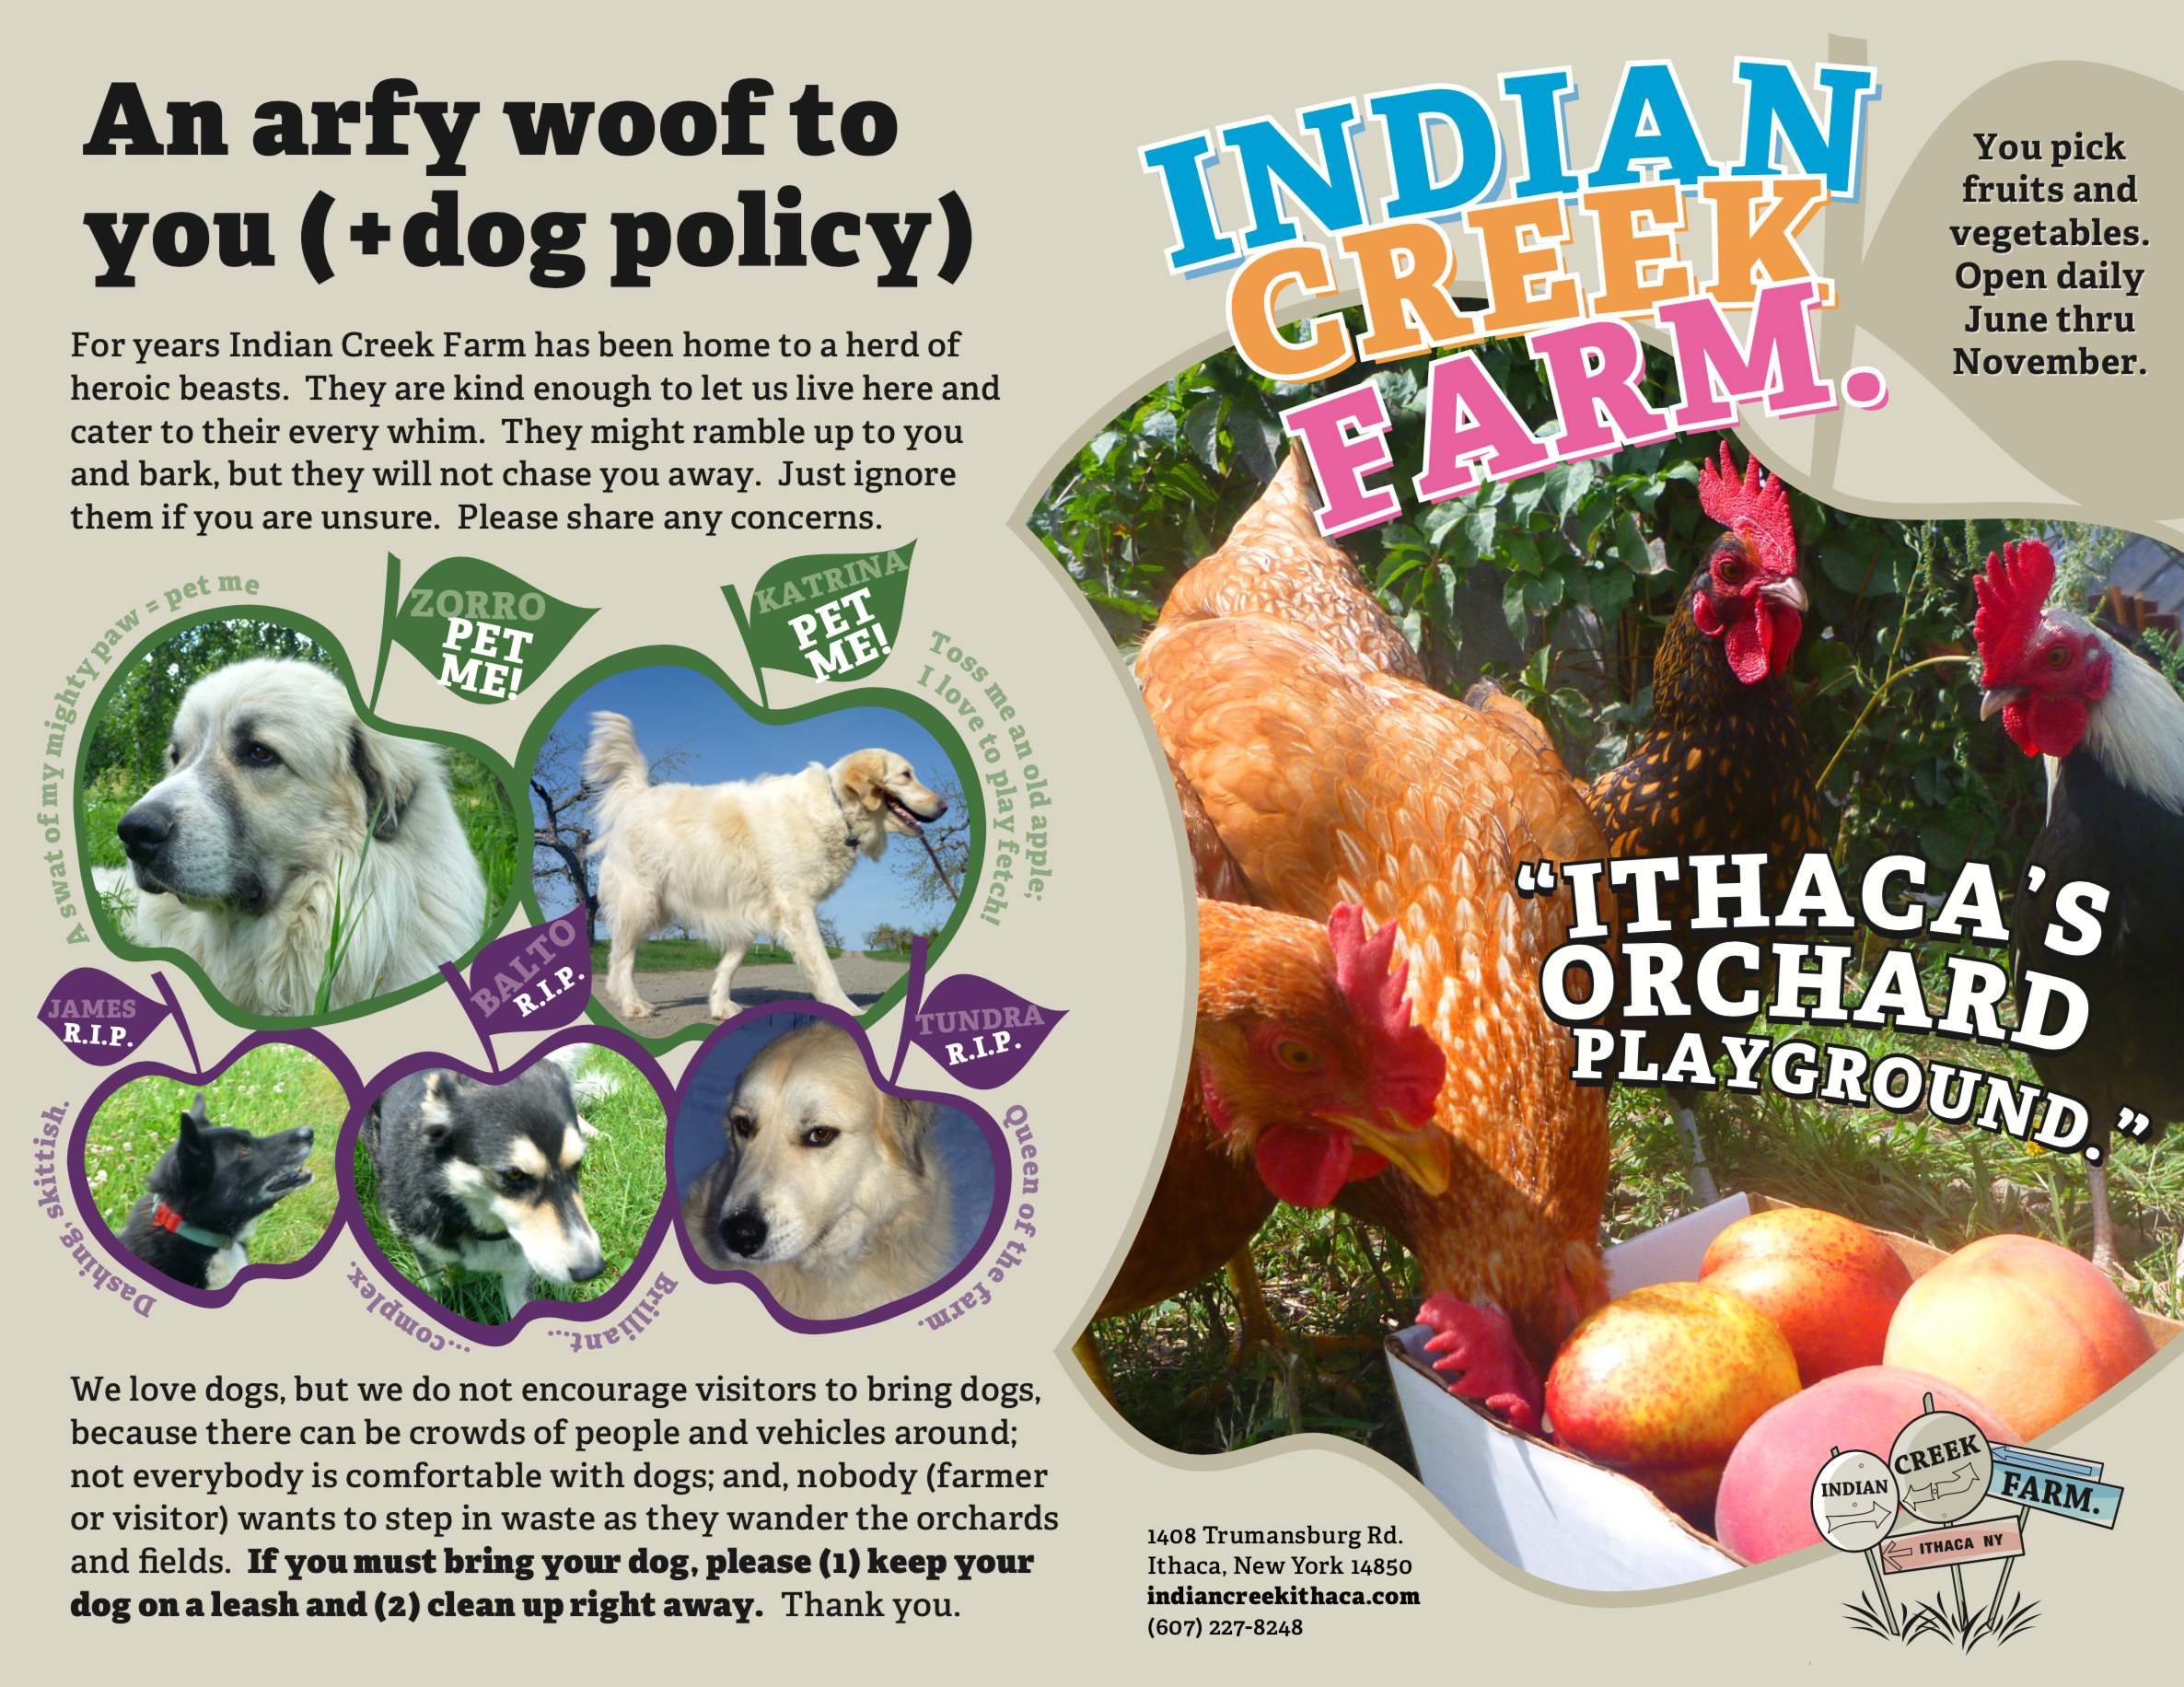 Visit Indian Creek Farm, for the Fruits Would Like Some